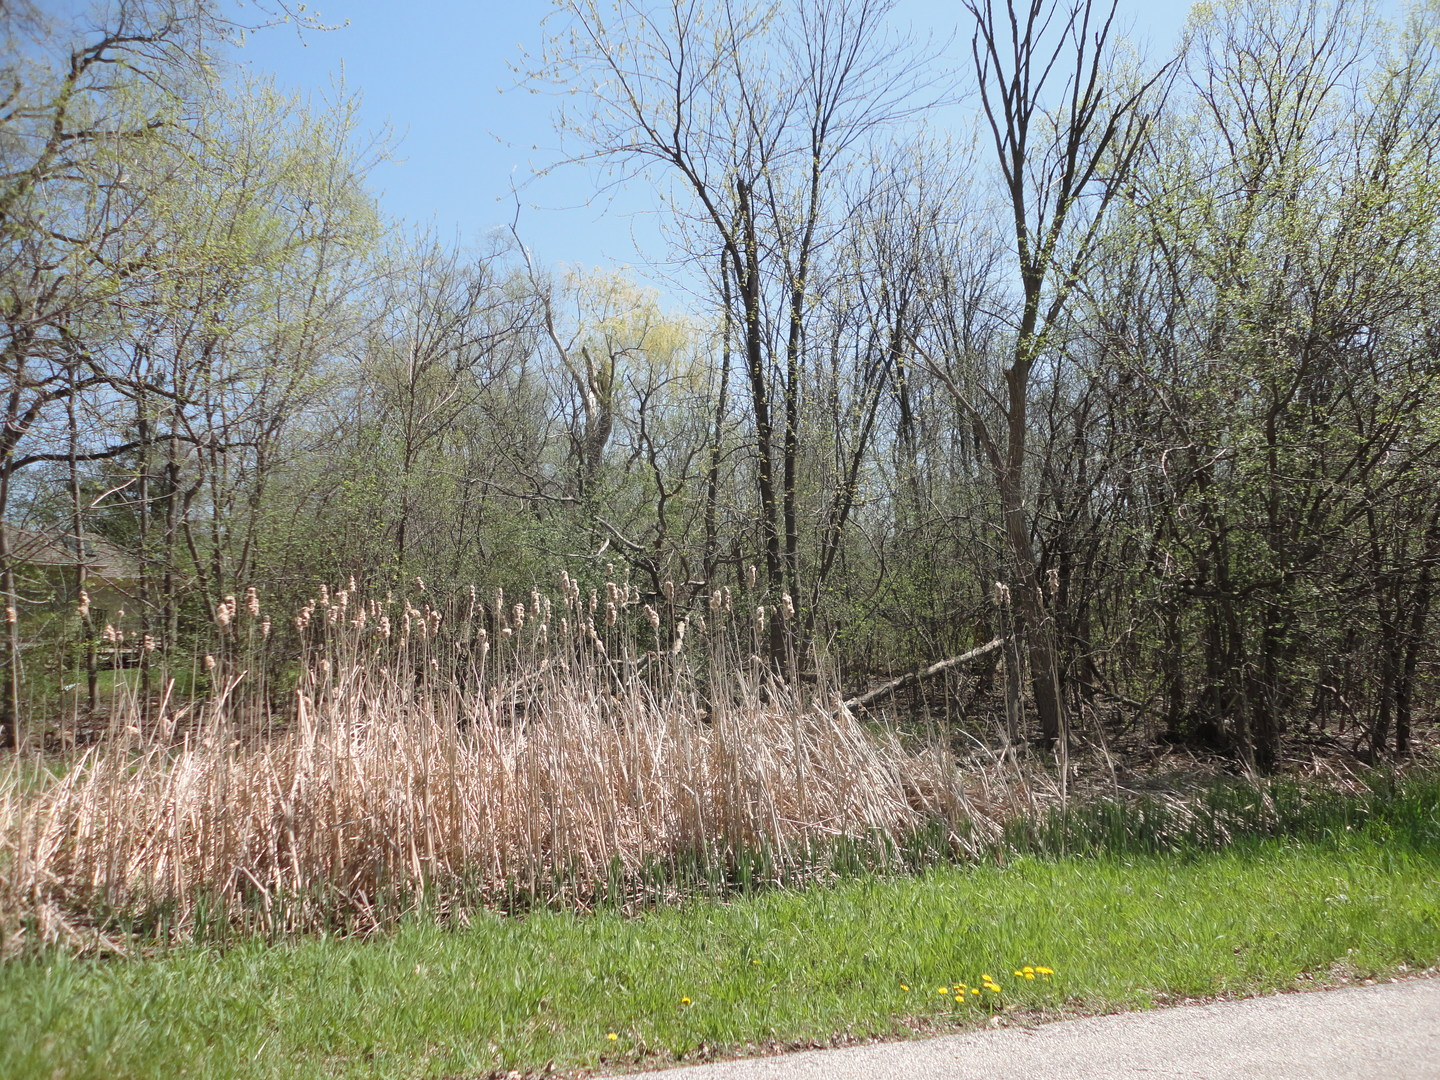 Build your New Home here in this Quiet Country-Like setting with easy access to highway system.